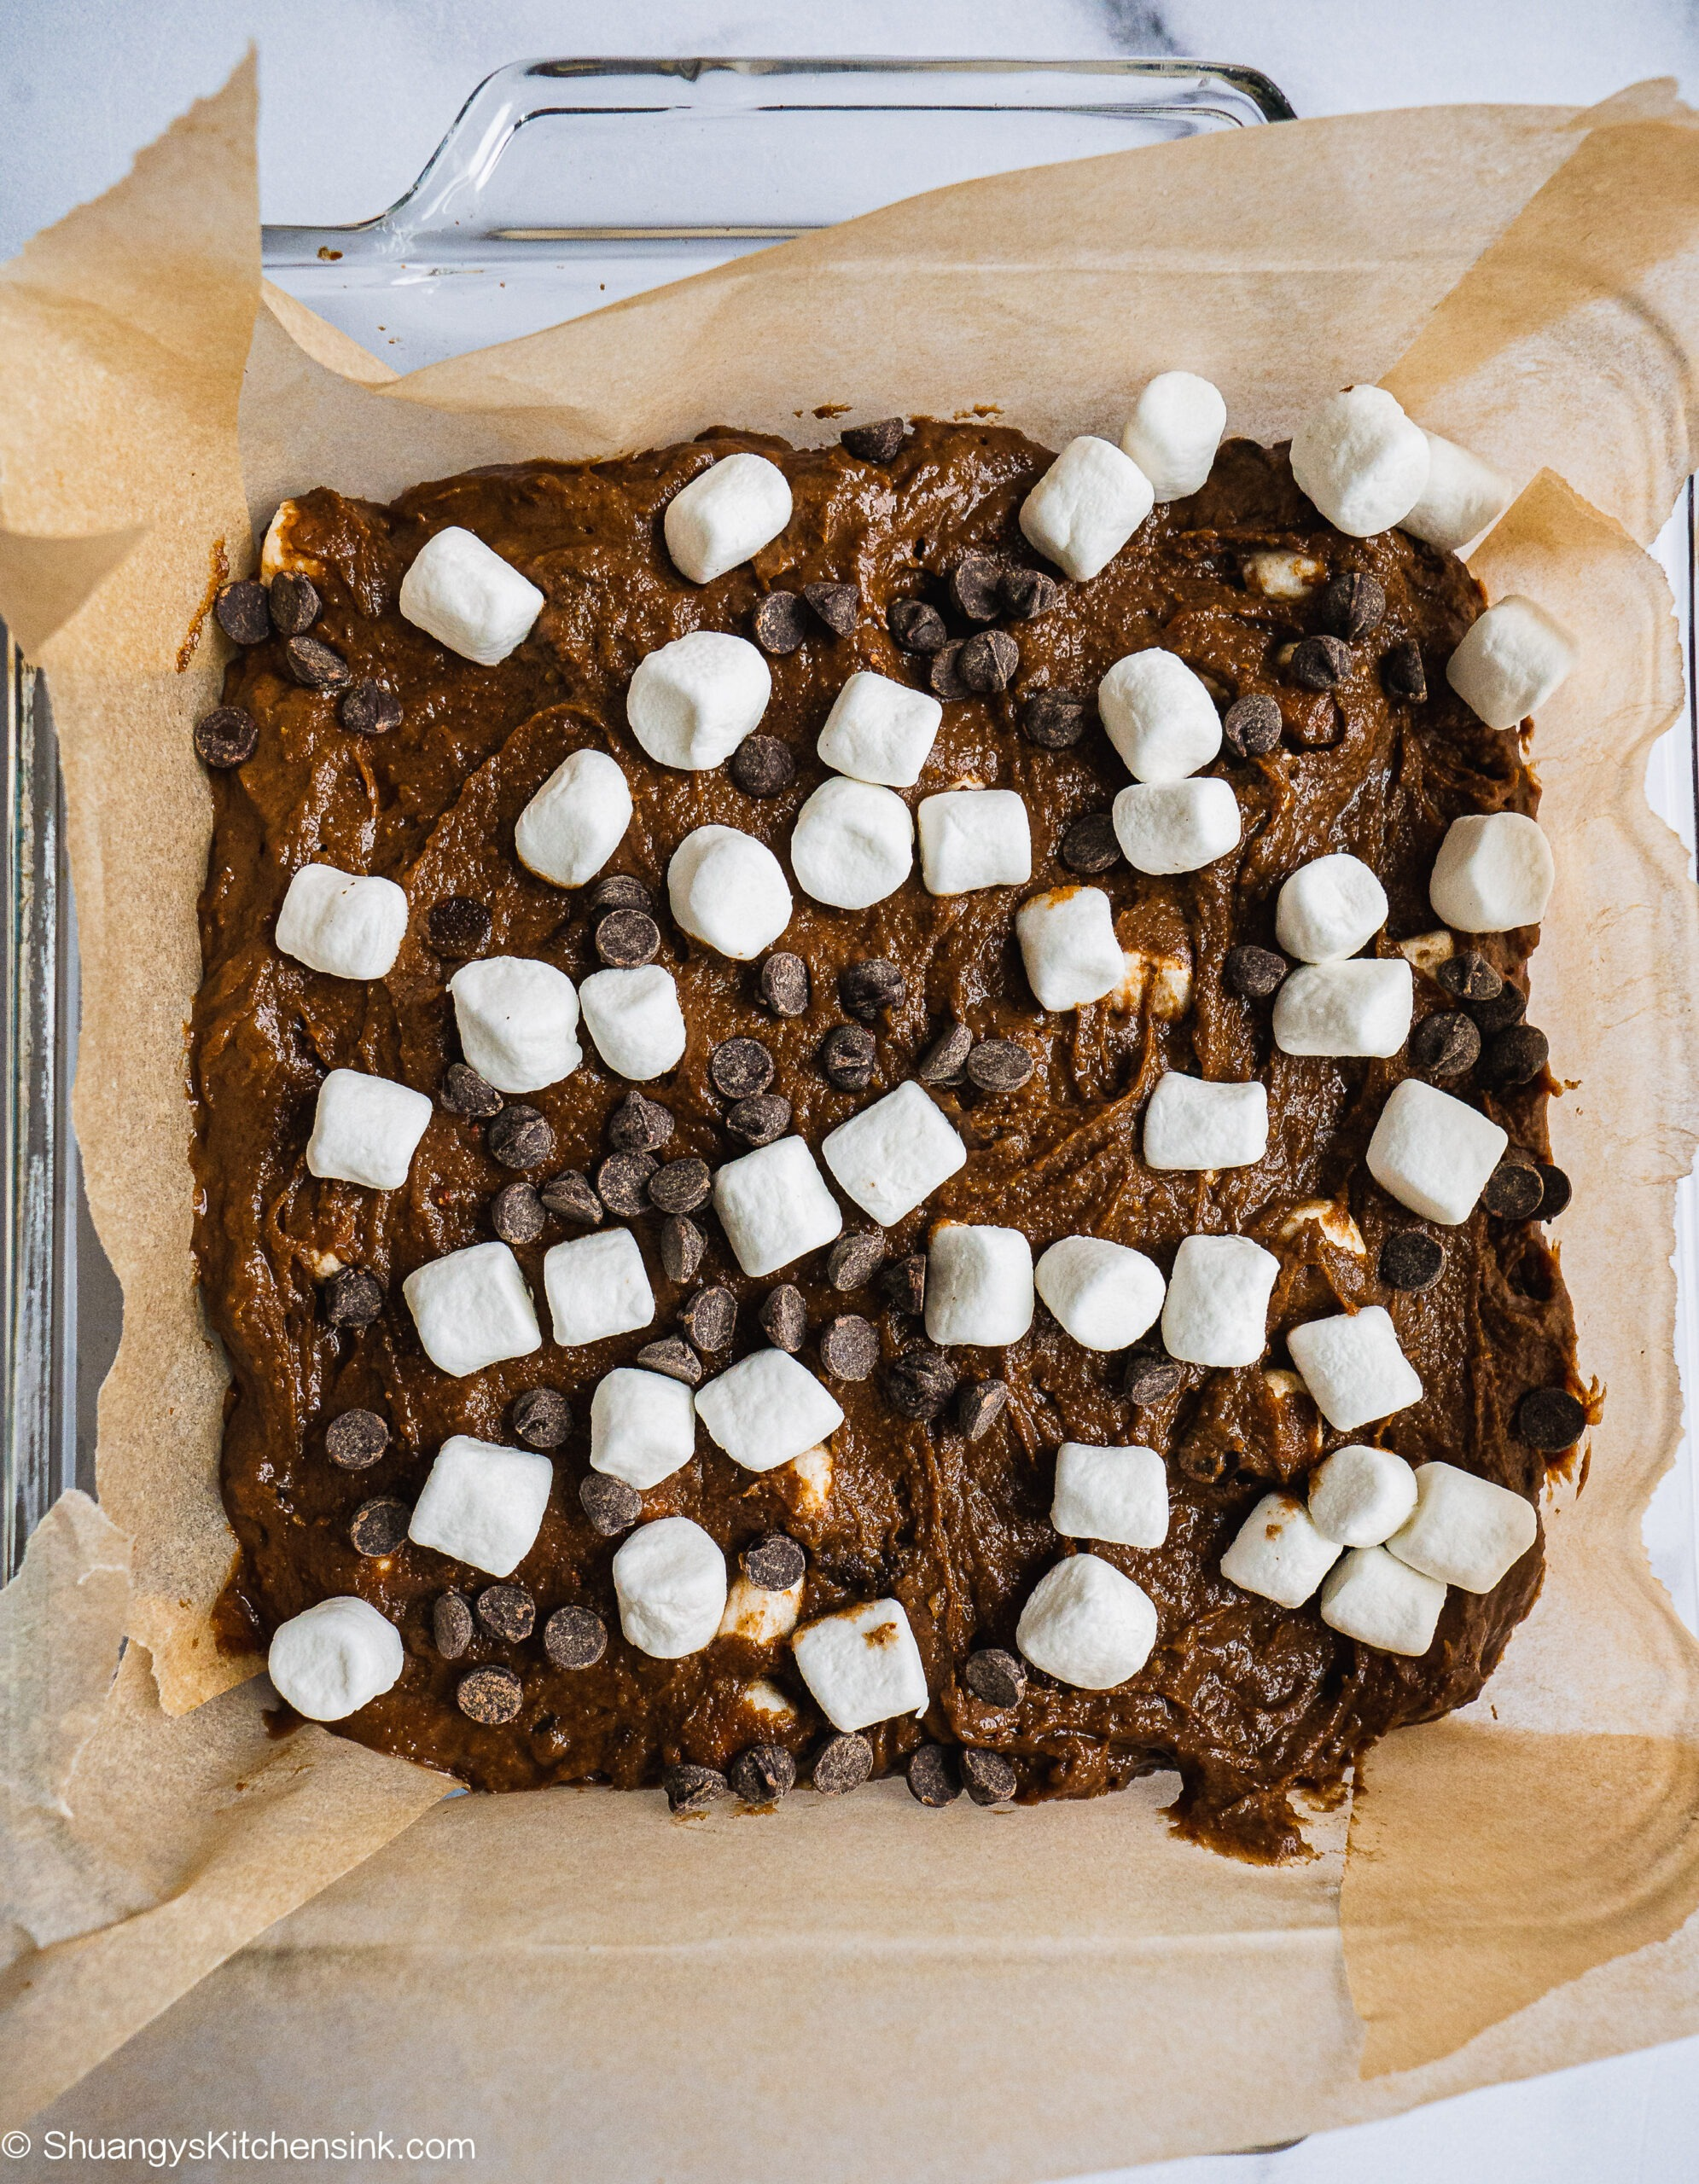 A pan of raw sweet potato brownie batter in a parchment paper lined baking dish. There are marshmallows and chocolate chips on top.